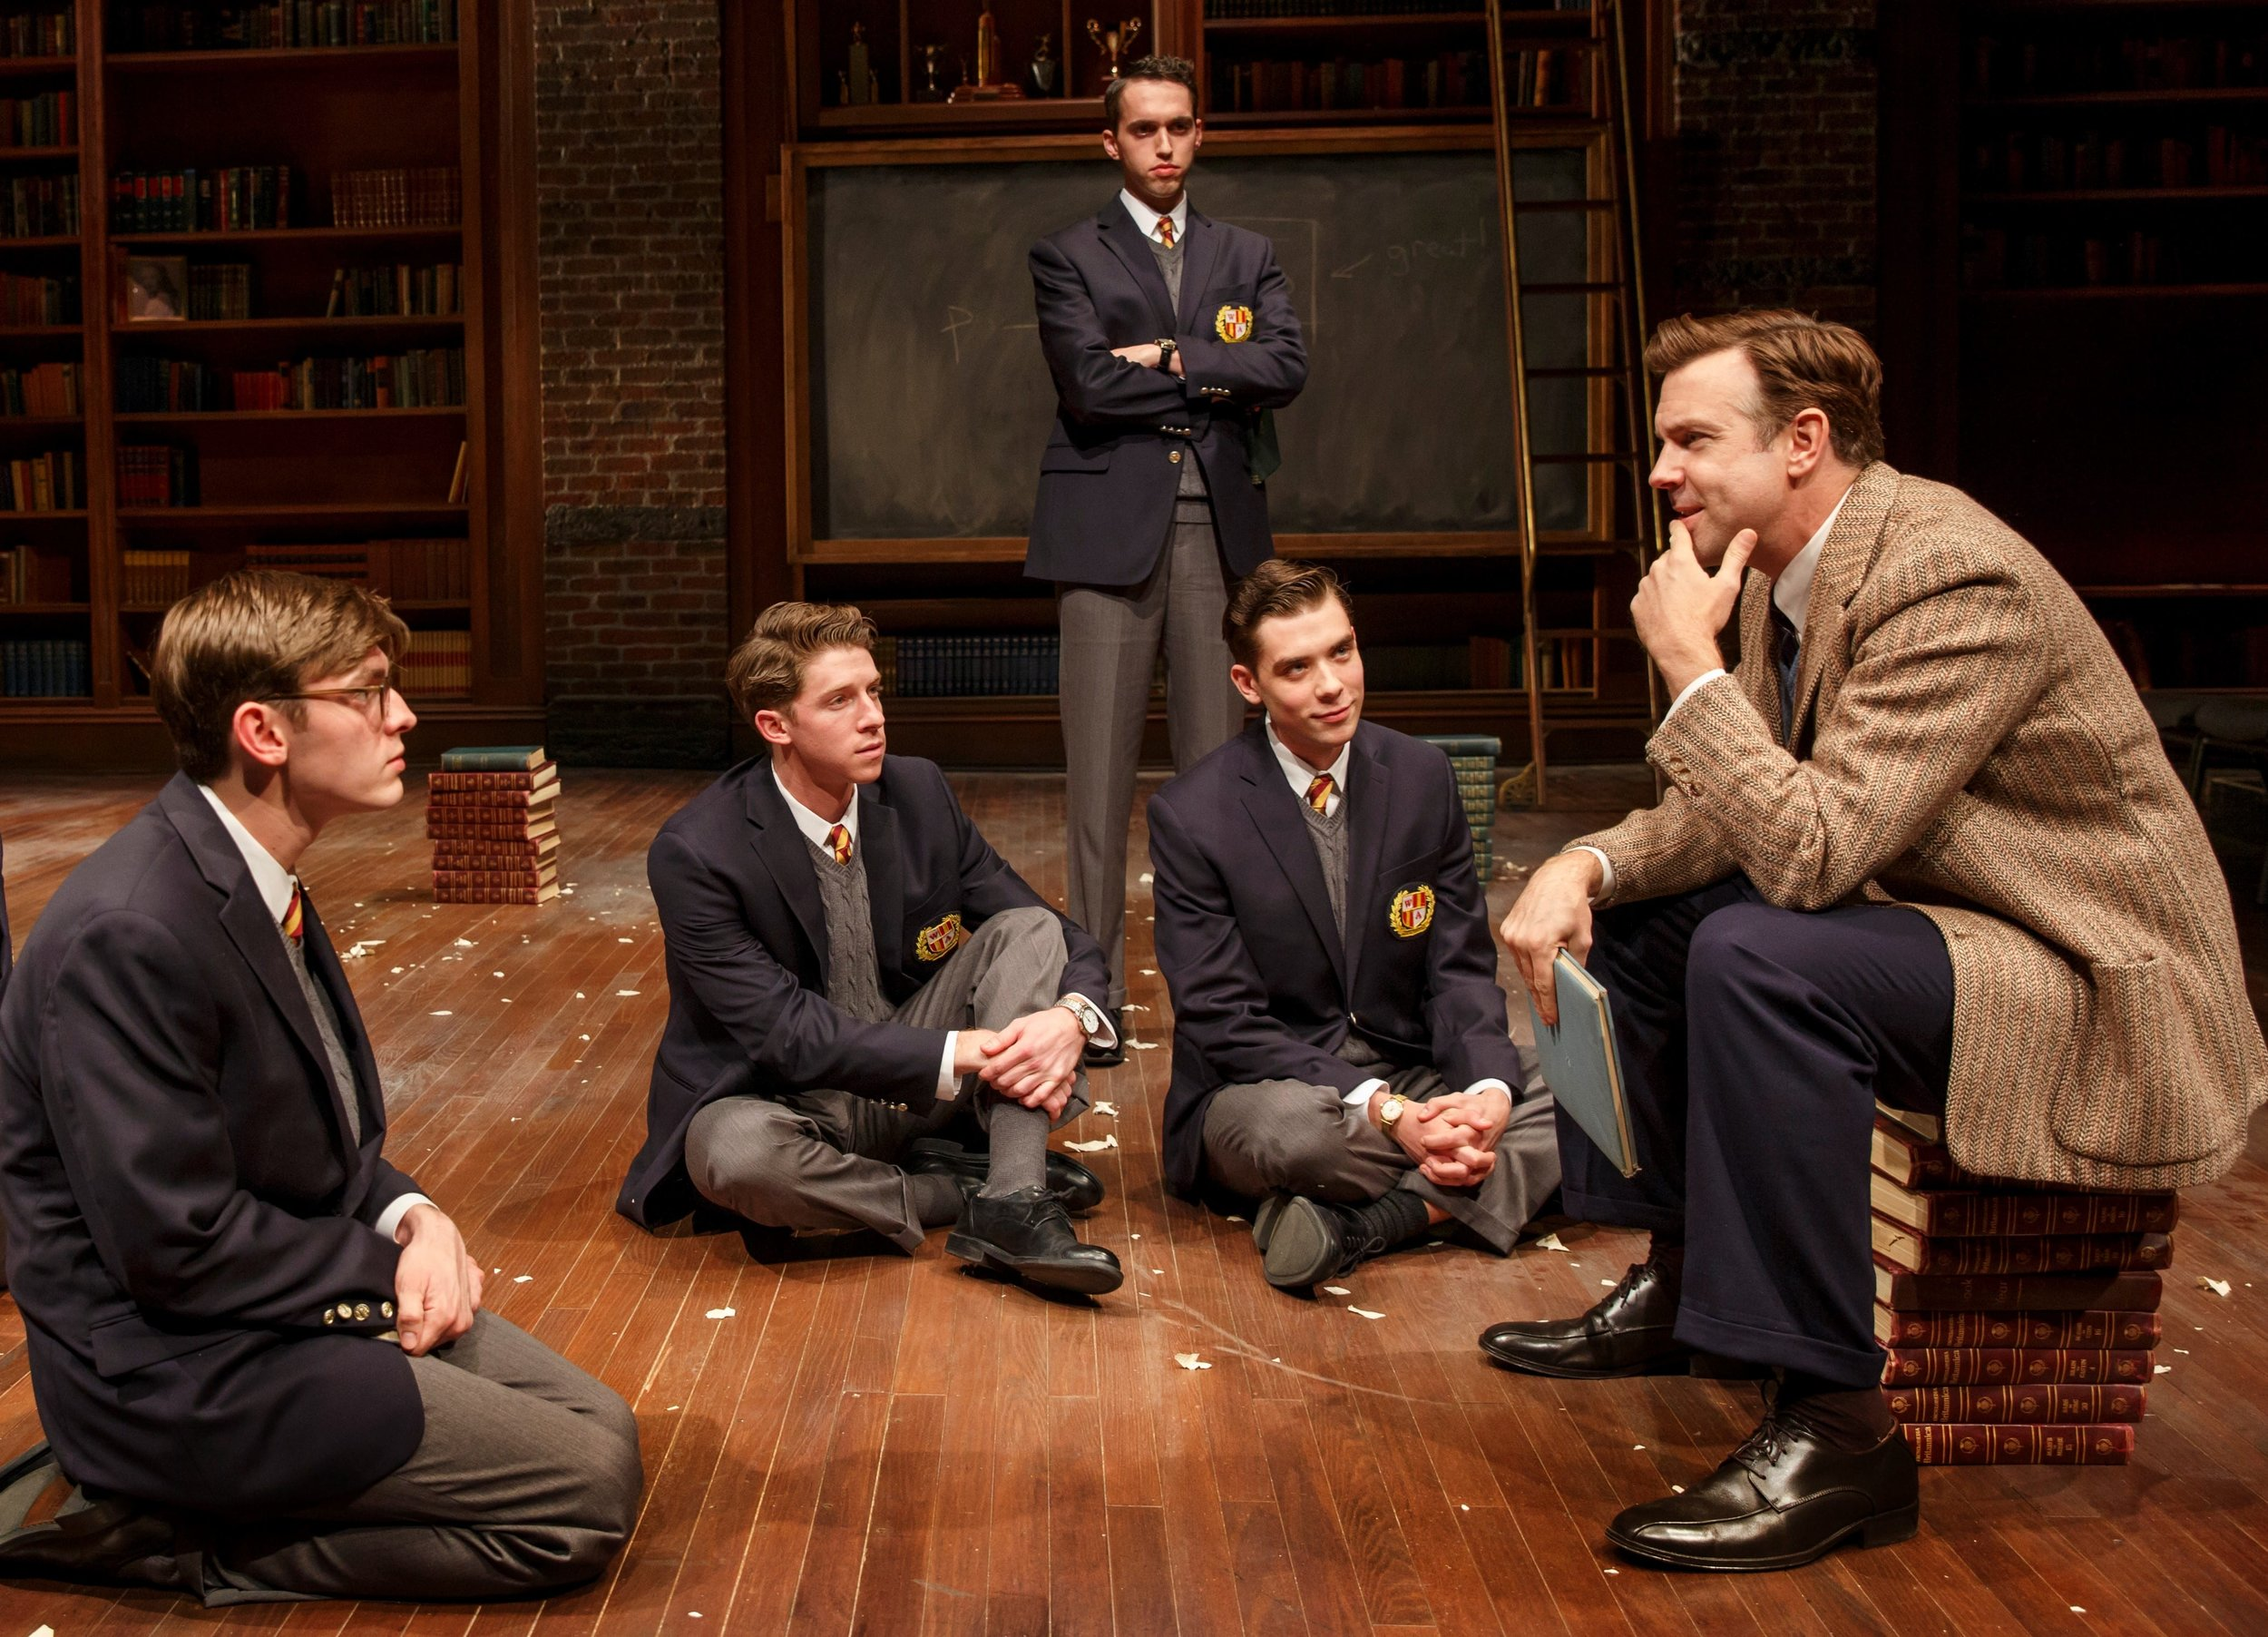 Dead Poets Society feature image